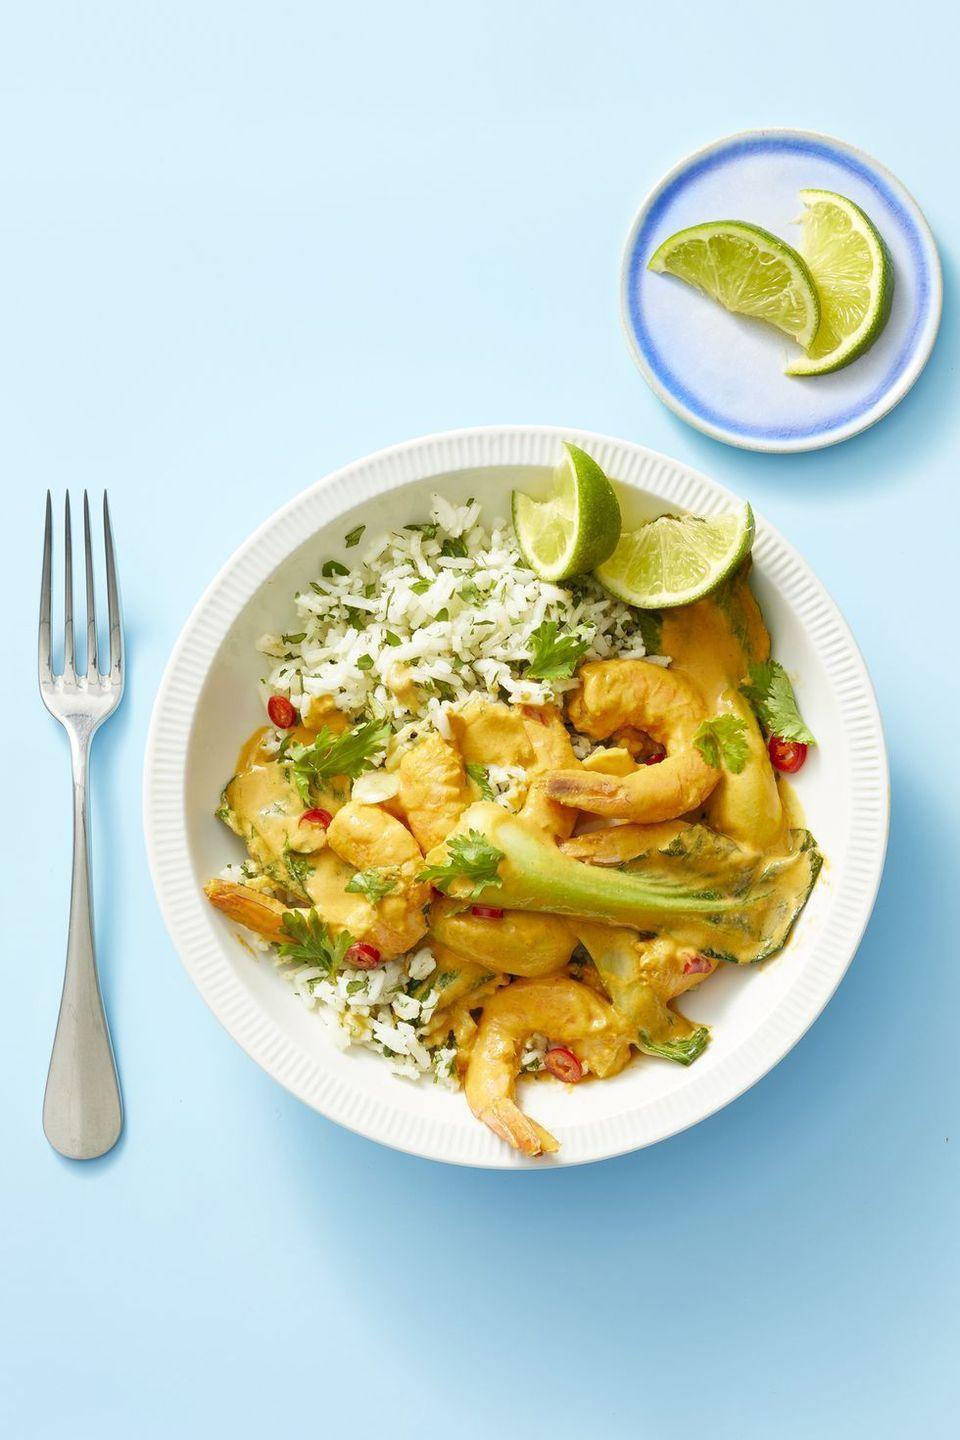 """<p>Making a big batch of rice for the week? Curry shrimp and veggies are sautéed perfectly in zesty lime juice. </p><p><em><a href=""""https://www.goodhousekeeping.com/food-recipes/easy/a23694252/red-curry-shrimp-and-cilantro-rice-recipe/"""" rel=""""nofollow noopener"""" target=""""_blank"""" data-ylk=""""slk:Get the recipe for Red Curry Shrimp and Cilantro Rice »"""" class=""""link rapid-noclick-resp"""">Get the recipe for Red Curry Shrimp and Cilantro Rice »</a></em></p>"""